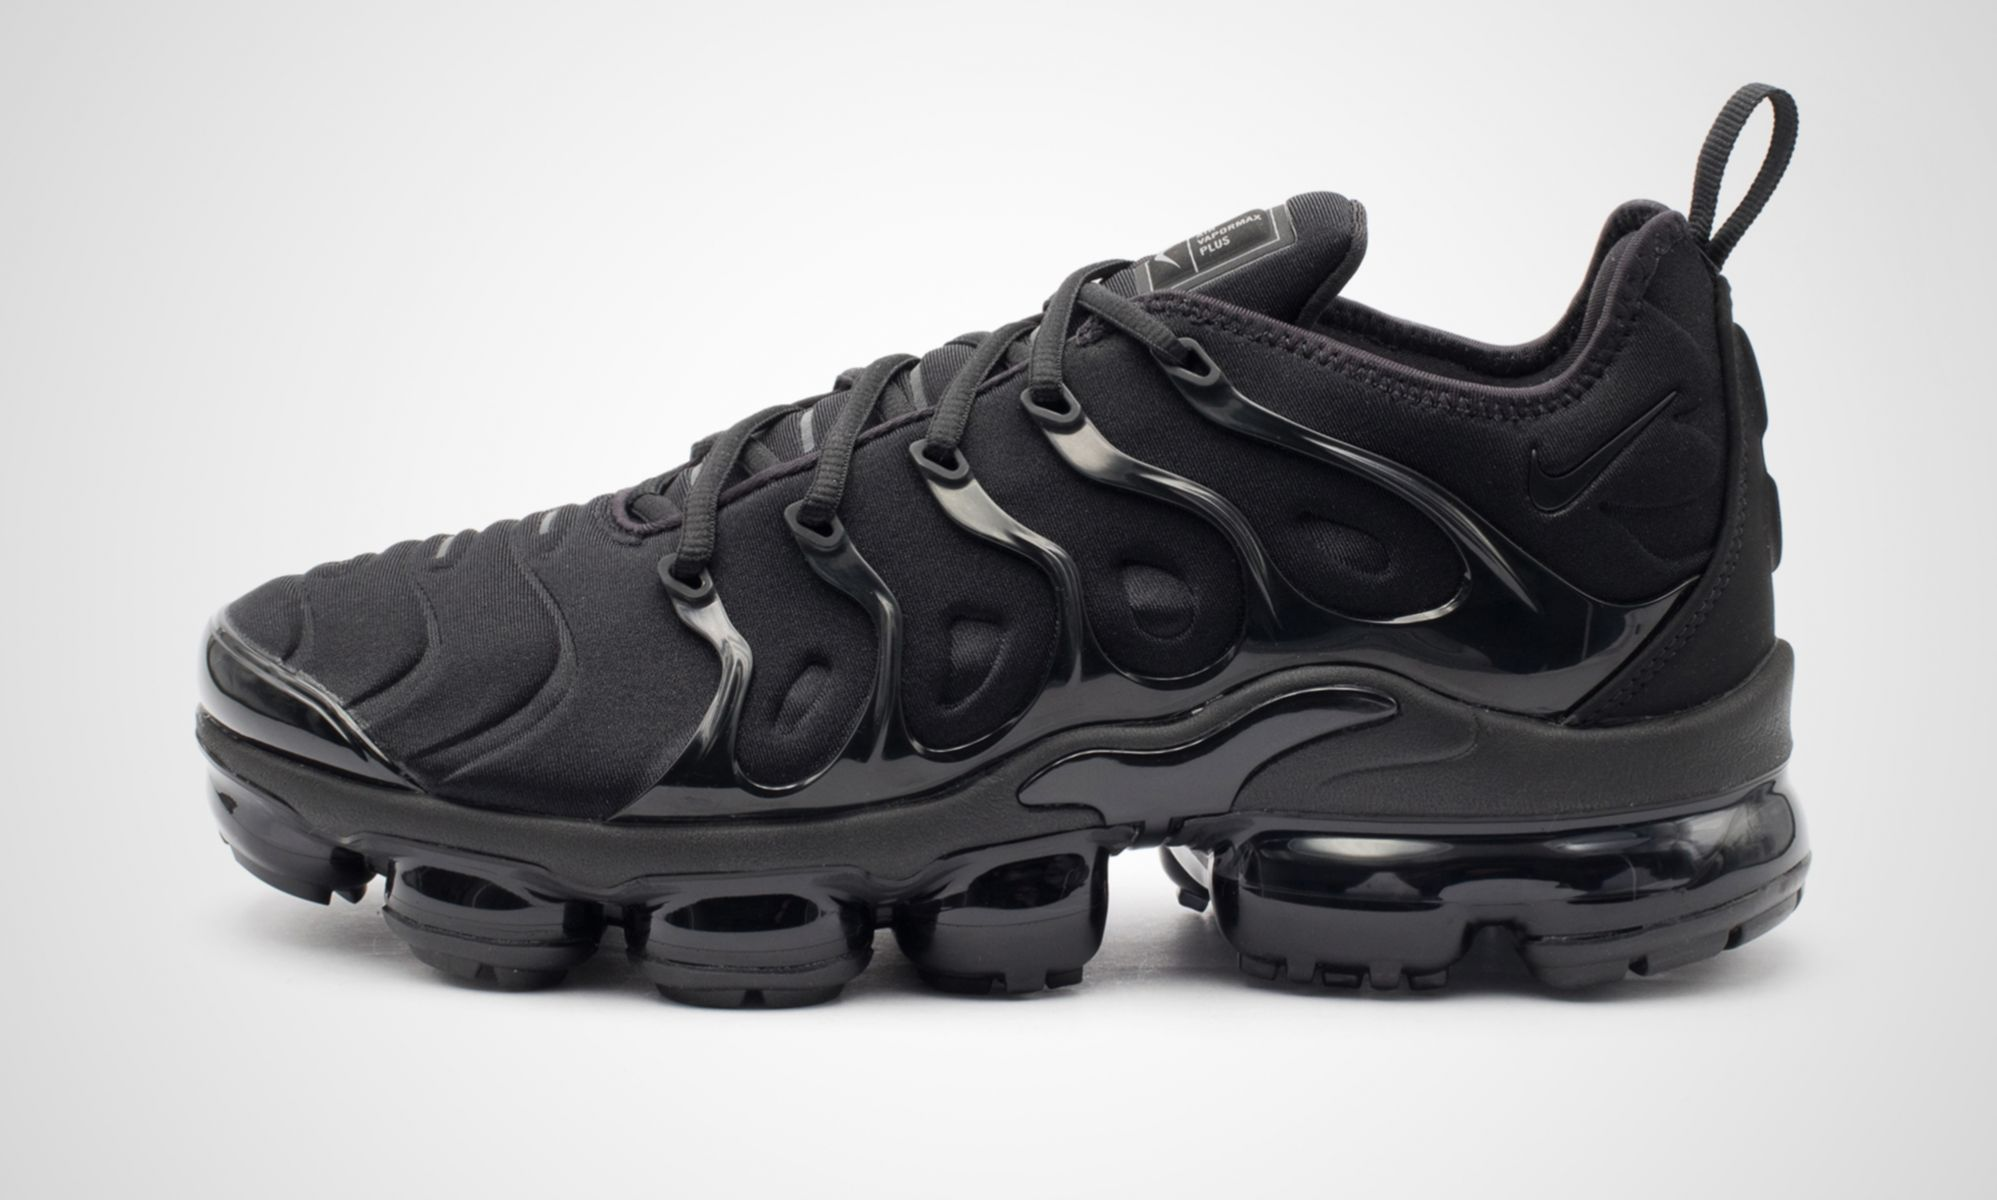 nike-924453-004-air-vapormax-plus-1